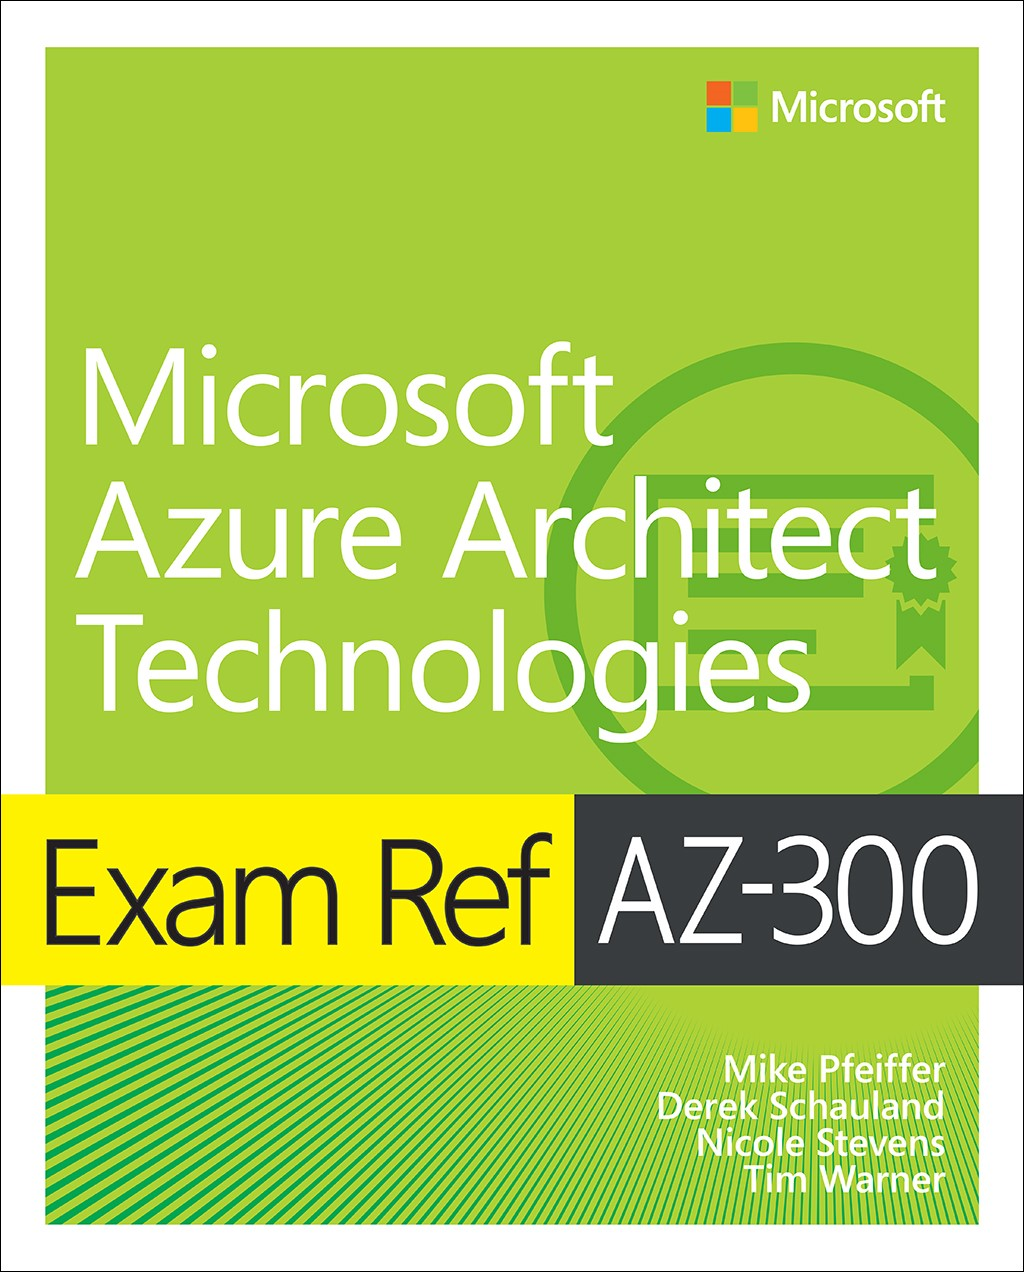 Exam Ref MS-200 Planning and Configuring a Messaging Platform